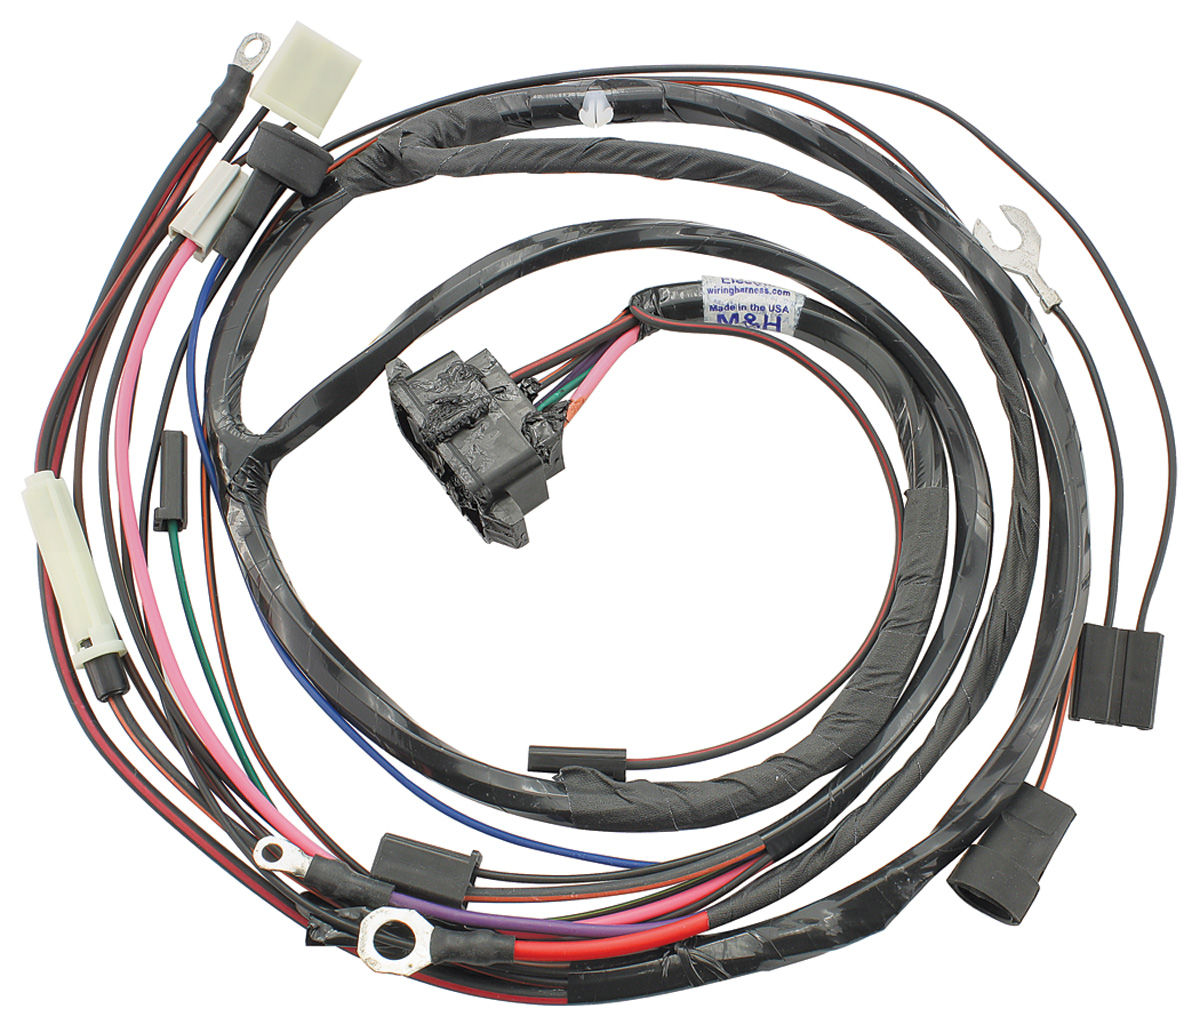 hight resolution of 1967 gto engine harness for hei ignition v8 w ac si series int